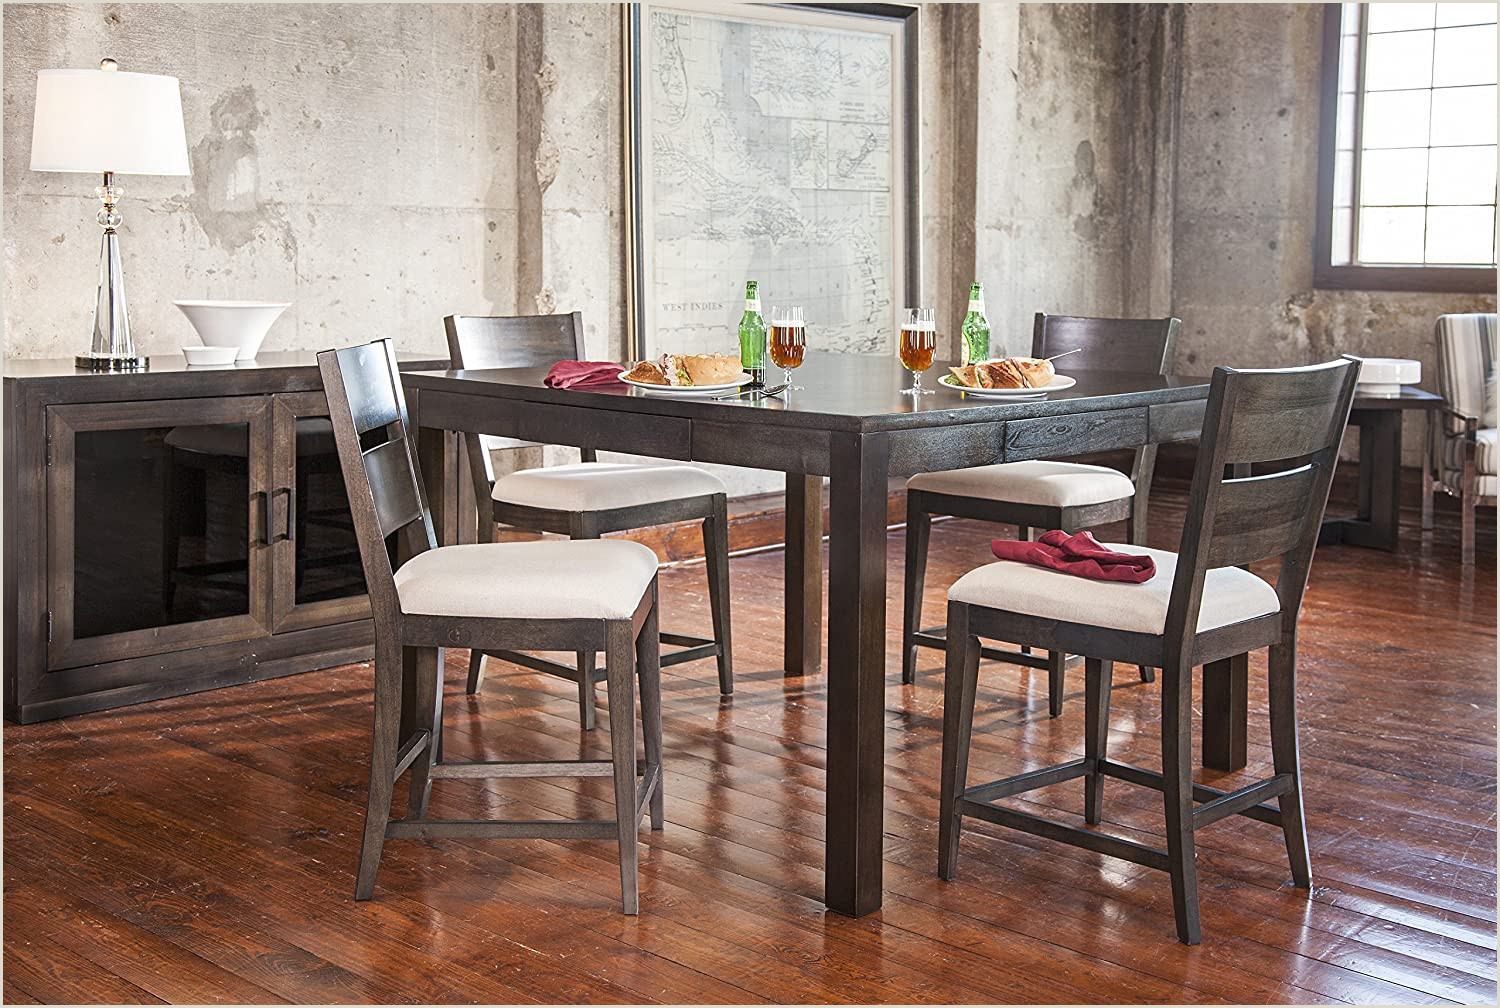 Vinyl Table Banner Furniture At Home Food And Wine Reserve Collection Counter Height Table Ebony